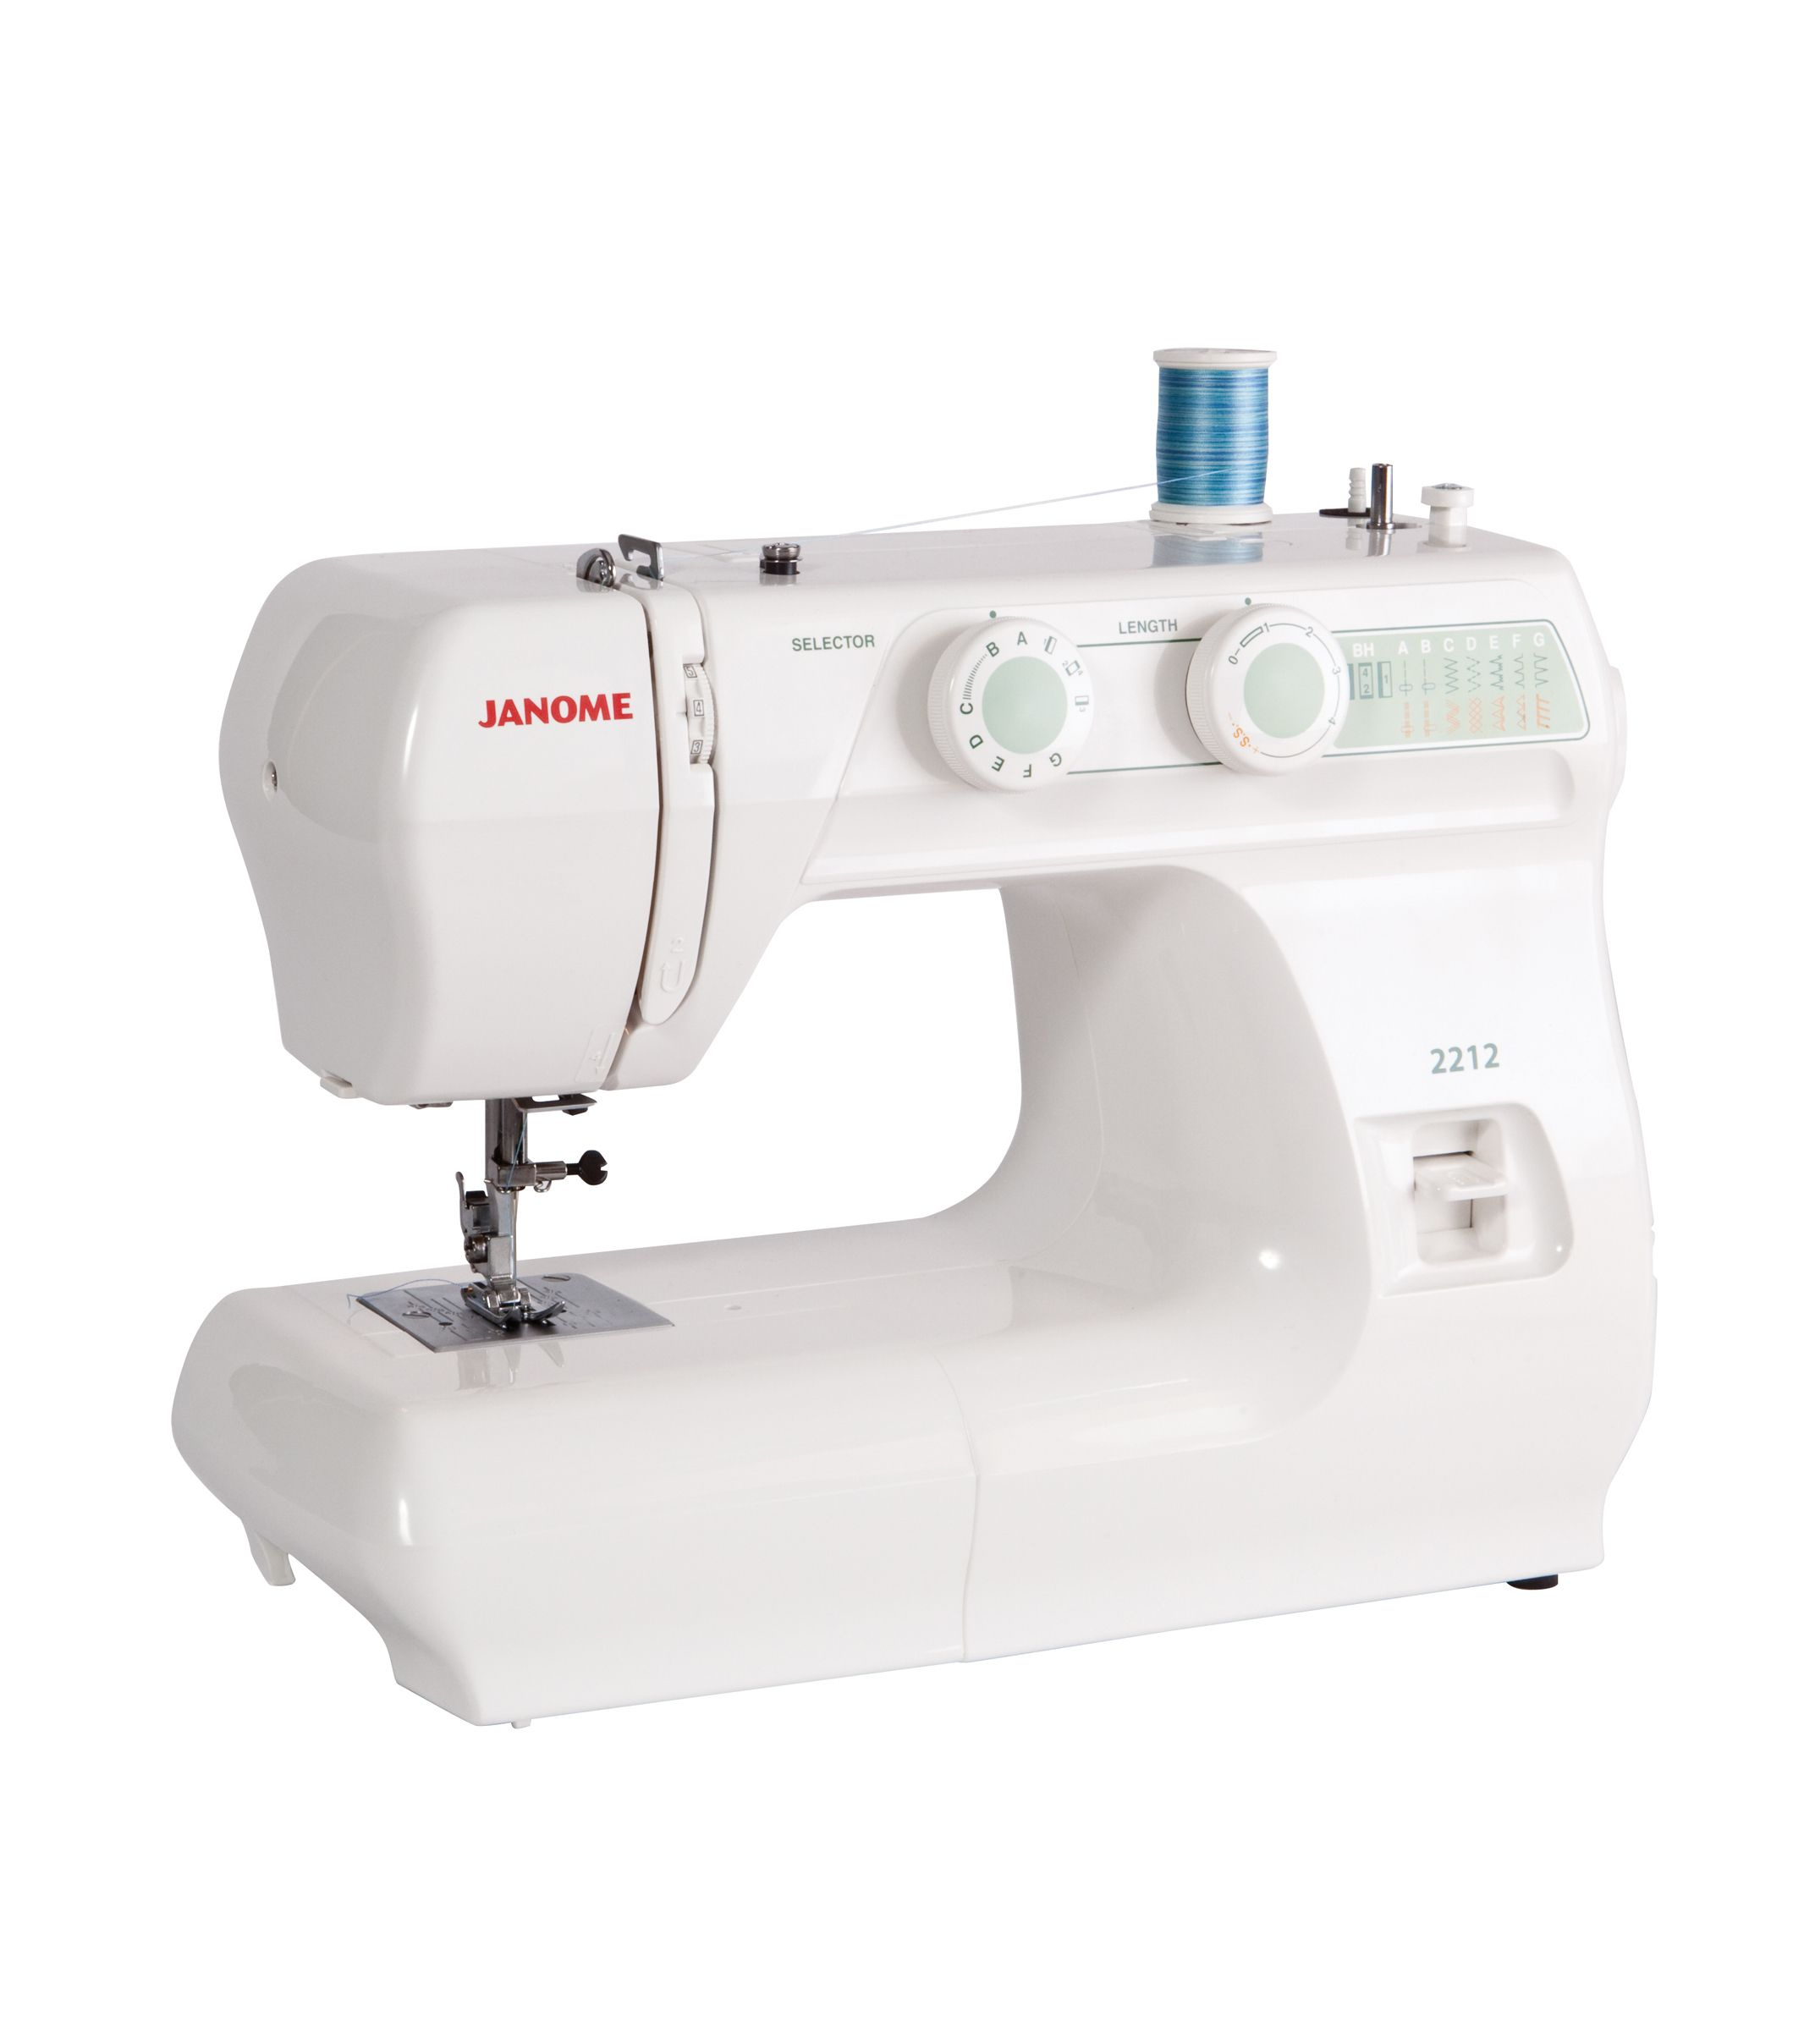 Janome 2212 Sewing Machine Other Pinterest Sewing Sewing